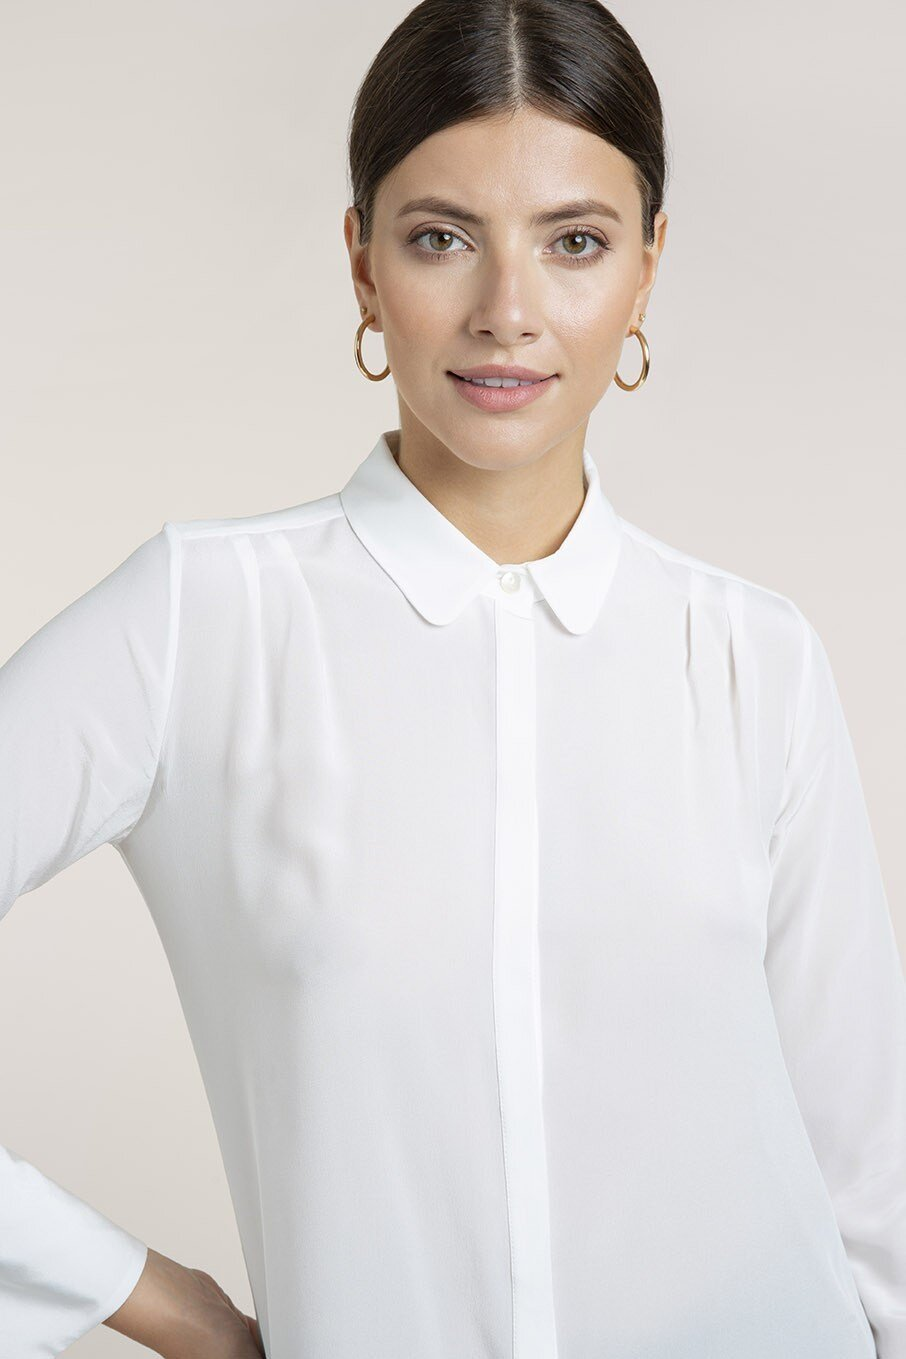 BEULAH LONDON LUXURY TOPS AND BLOUSES FROM £40 - From classic and ruffle necks to broderie Anglaise and floral prints, this range of ethical fashion from Beulah London will add a designer touch to your wardrobe.